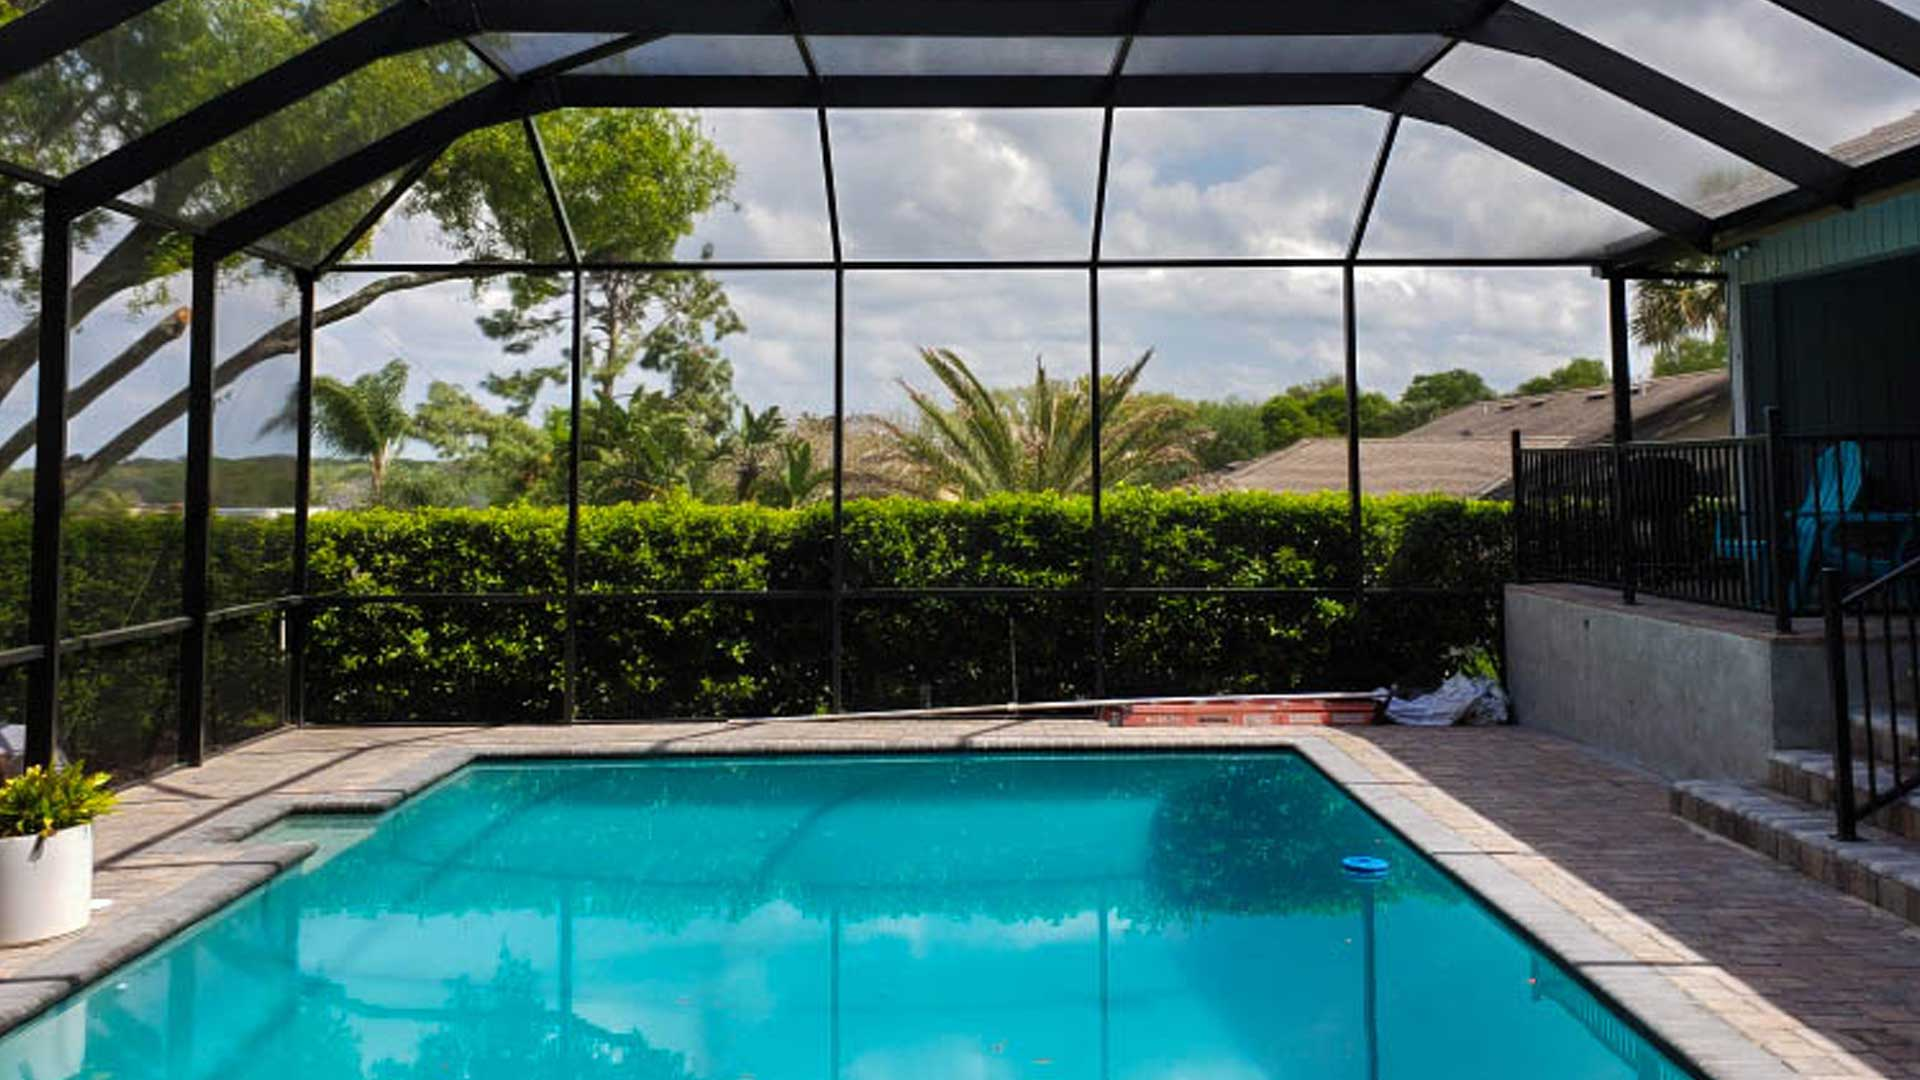 A new aluminum pool cage in the backyard of a property in Plant City, FL.